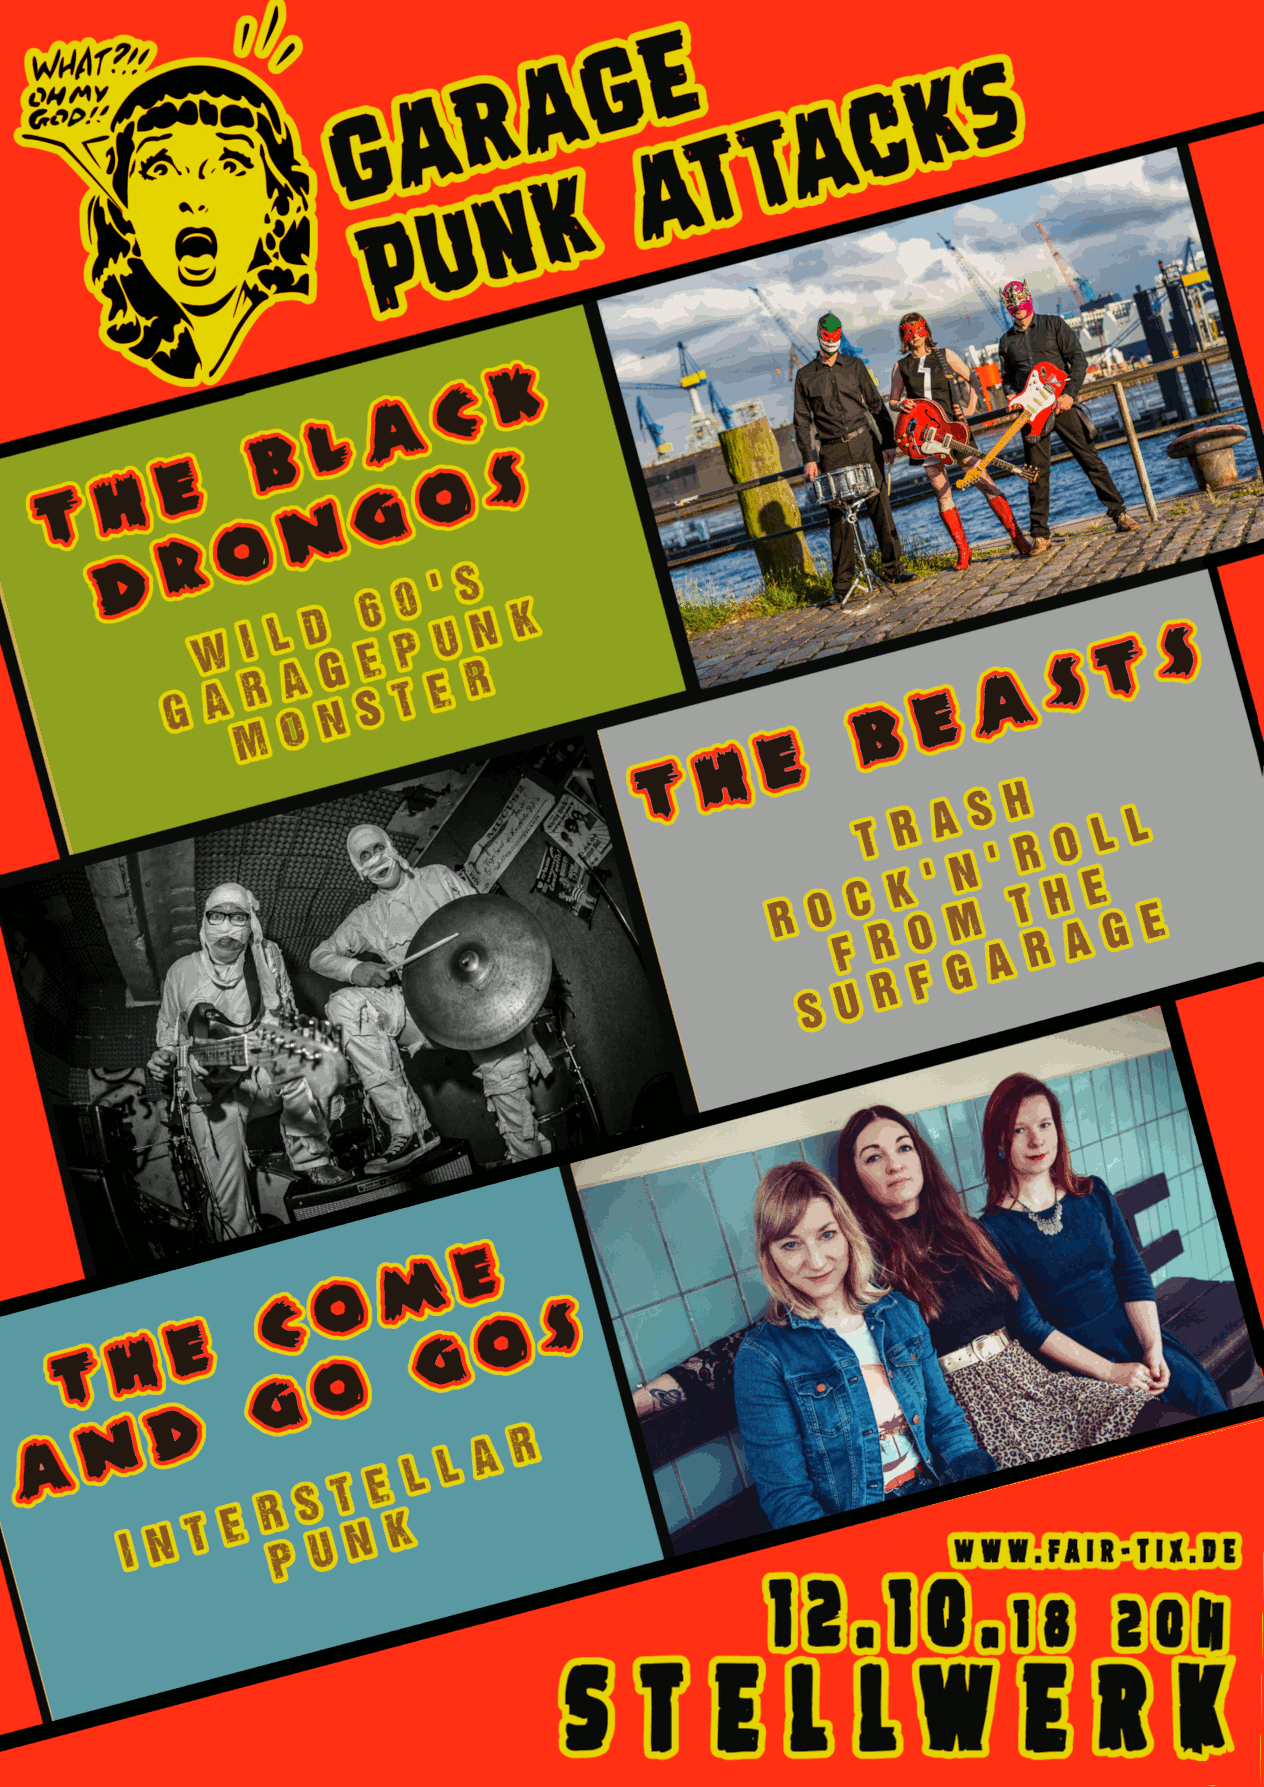 Preview: The Black Drongos & The Beasts